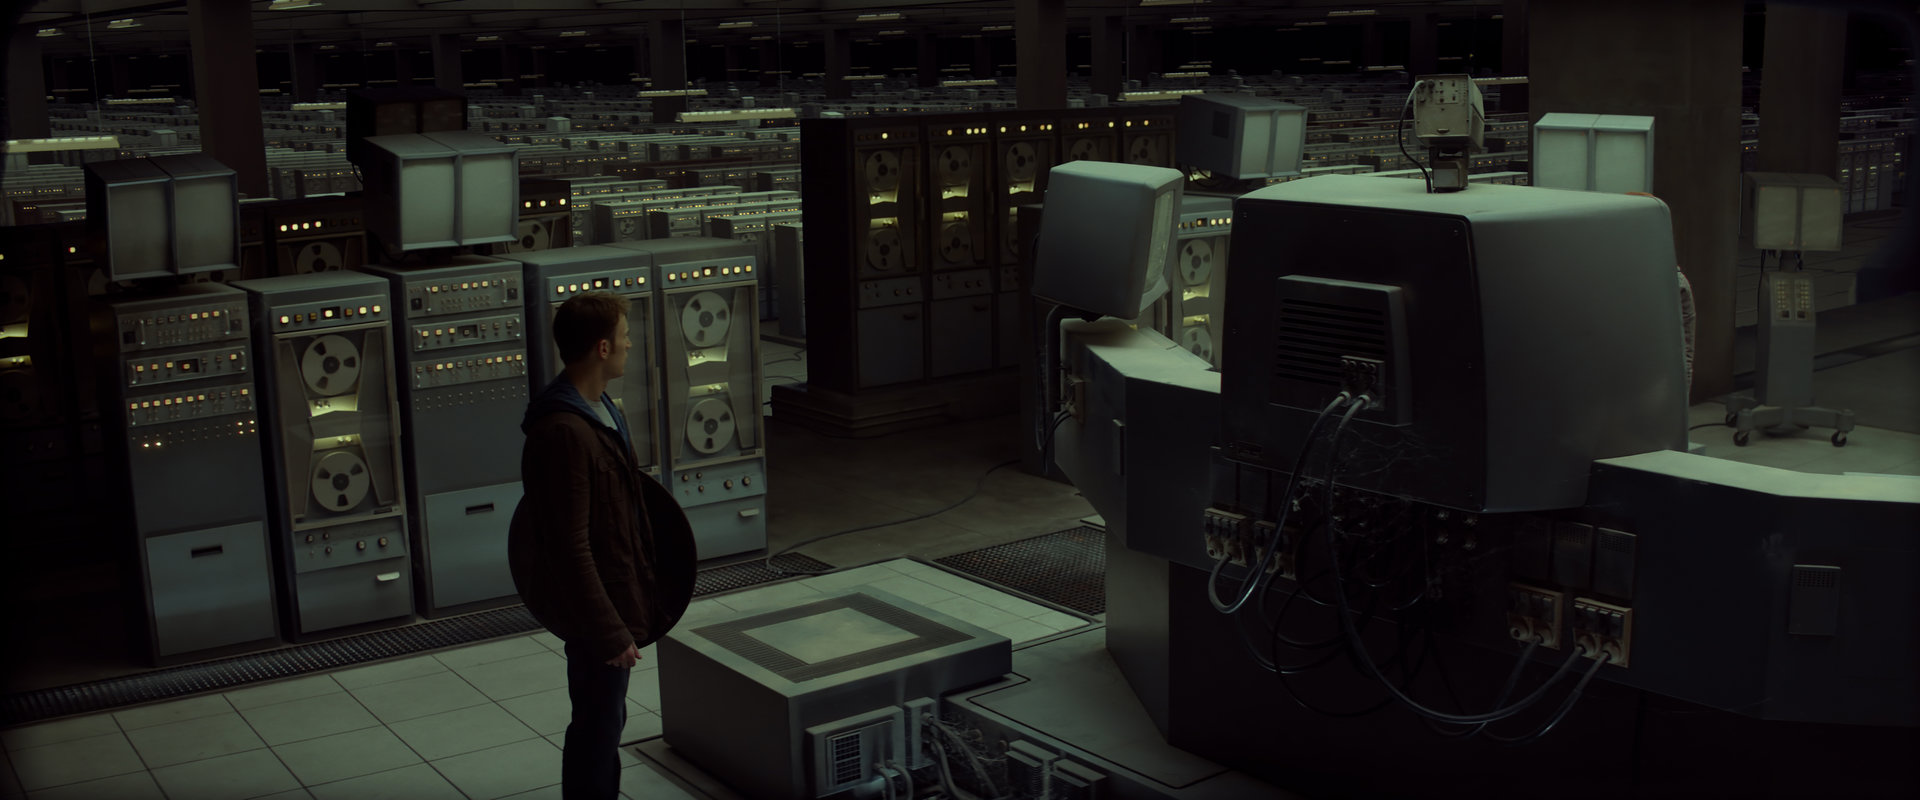 Extension of the live action plate (which includes characters and foreground) with never-ending rows of ancient computers, which form the digital brain of the deceased Doctor Zola.